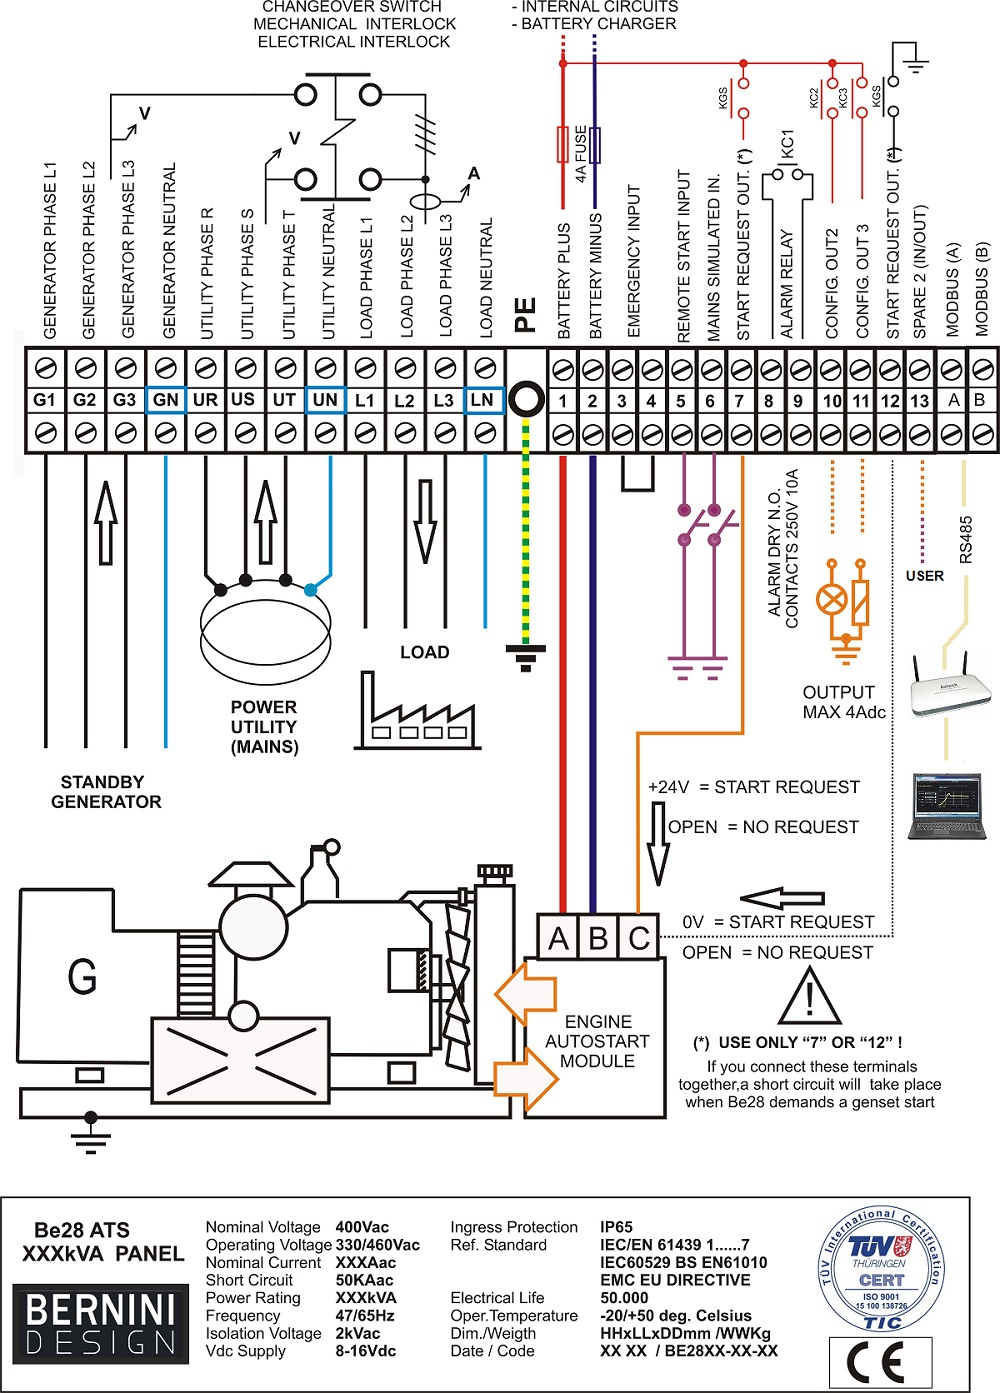 Miraculous Control Wiring Diagram Ats Wiring Library Wiring Cloud Ostrrenstrafr09Org